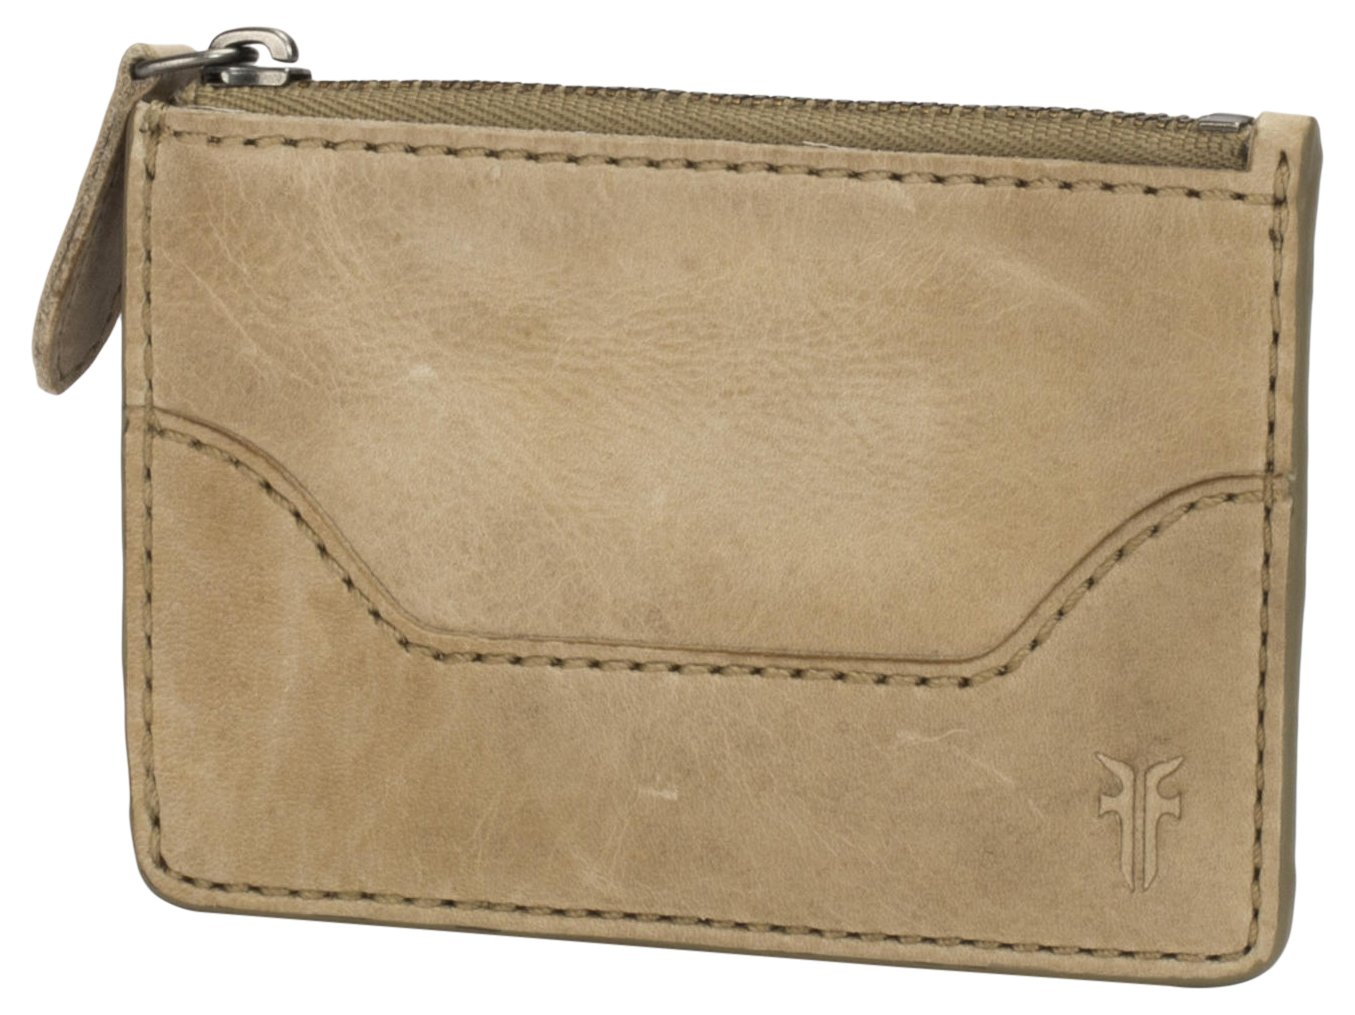 FRYE Women's Melissa Key Credit Card Holder, Sand, One Size